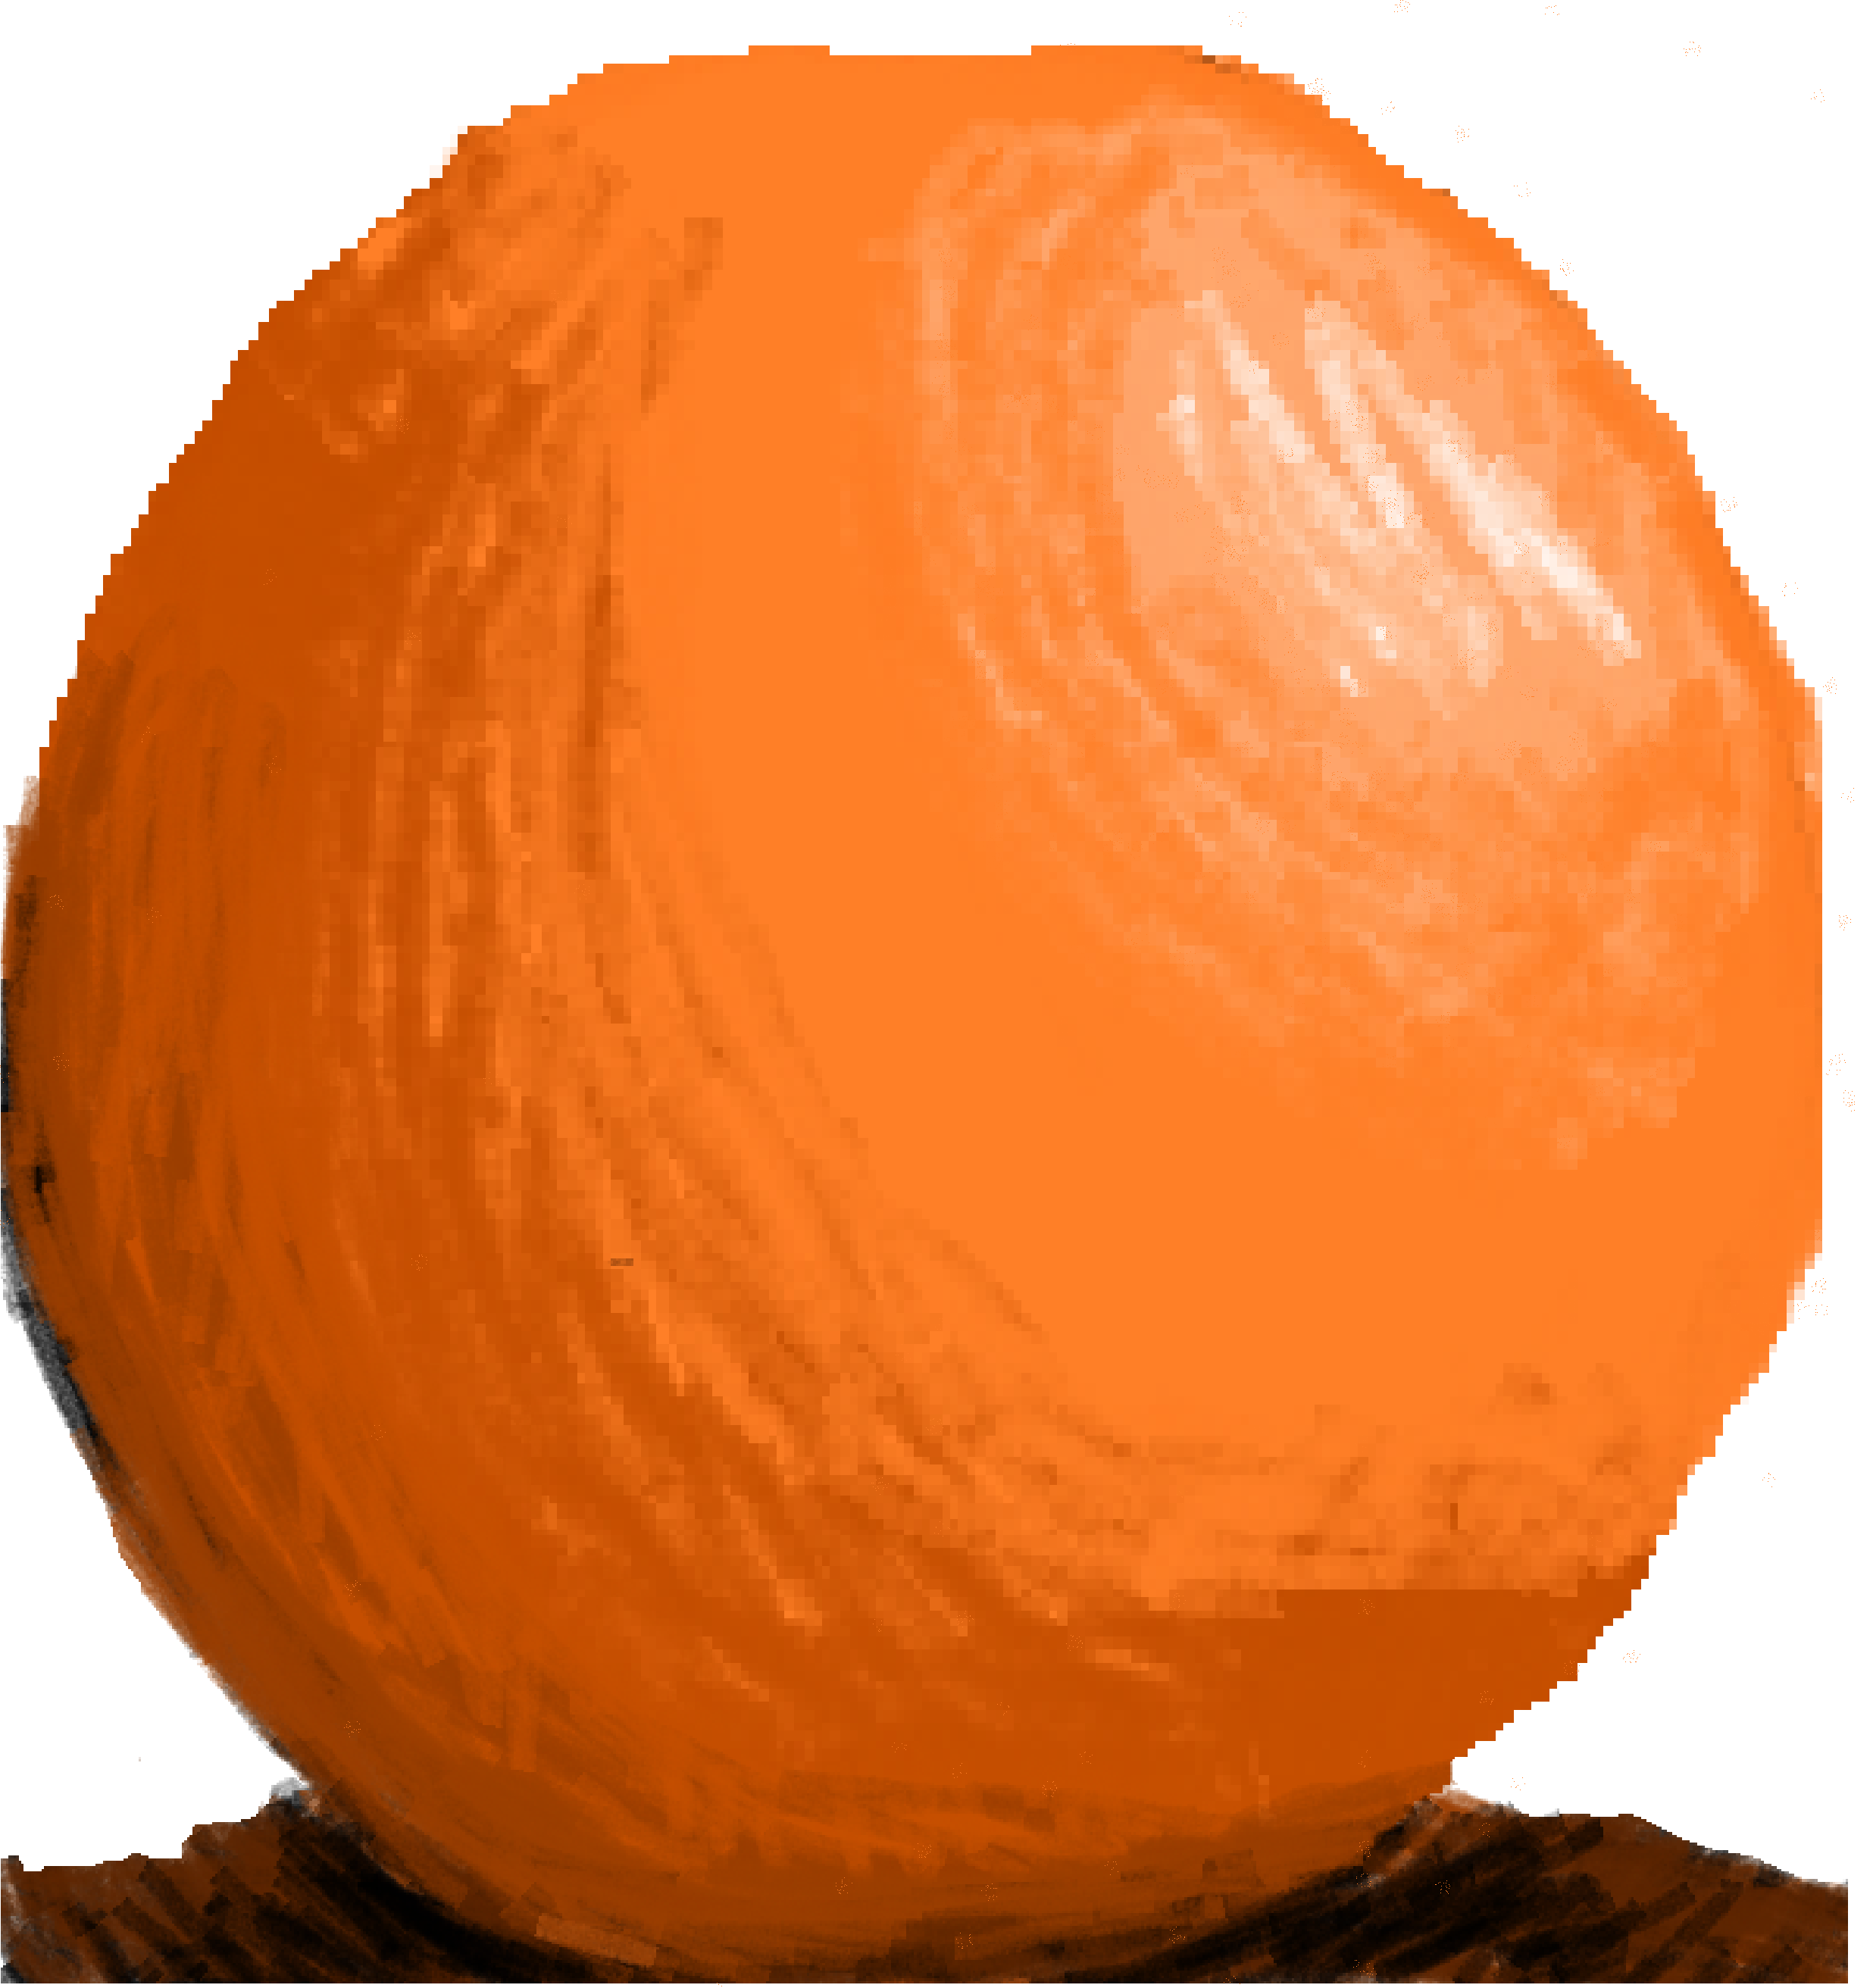 Realistic-ish orange ball